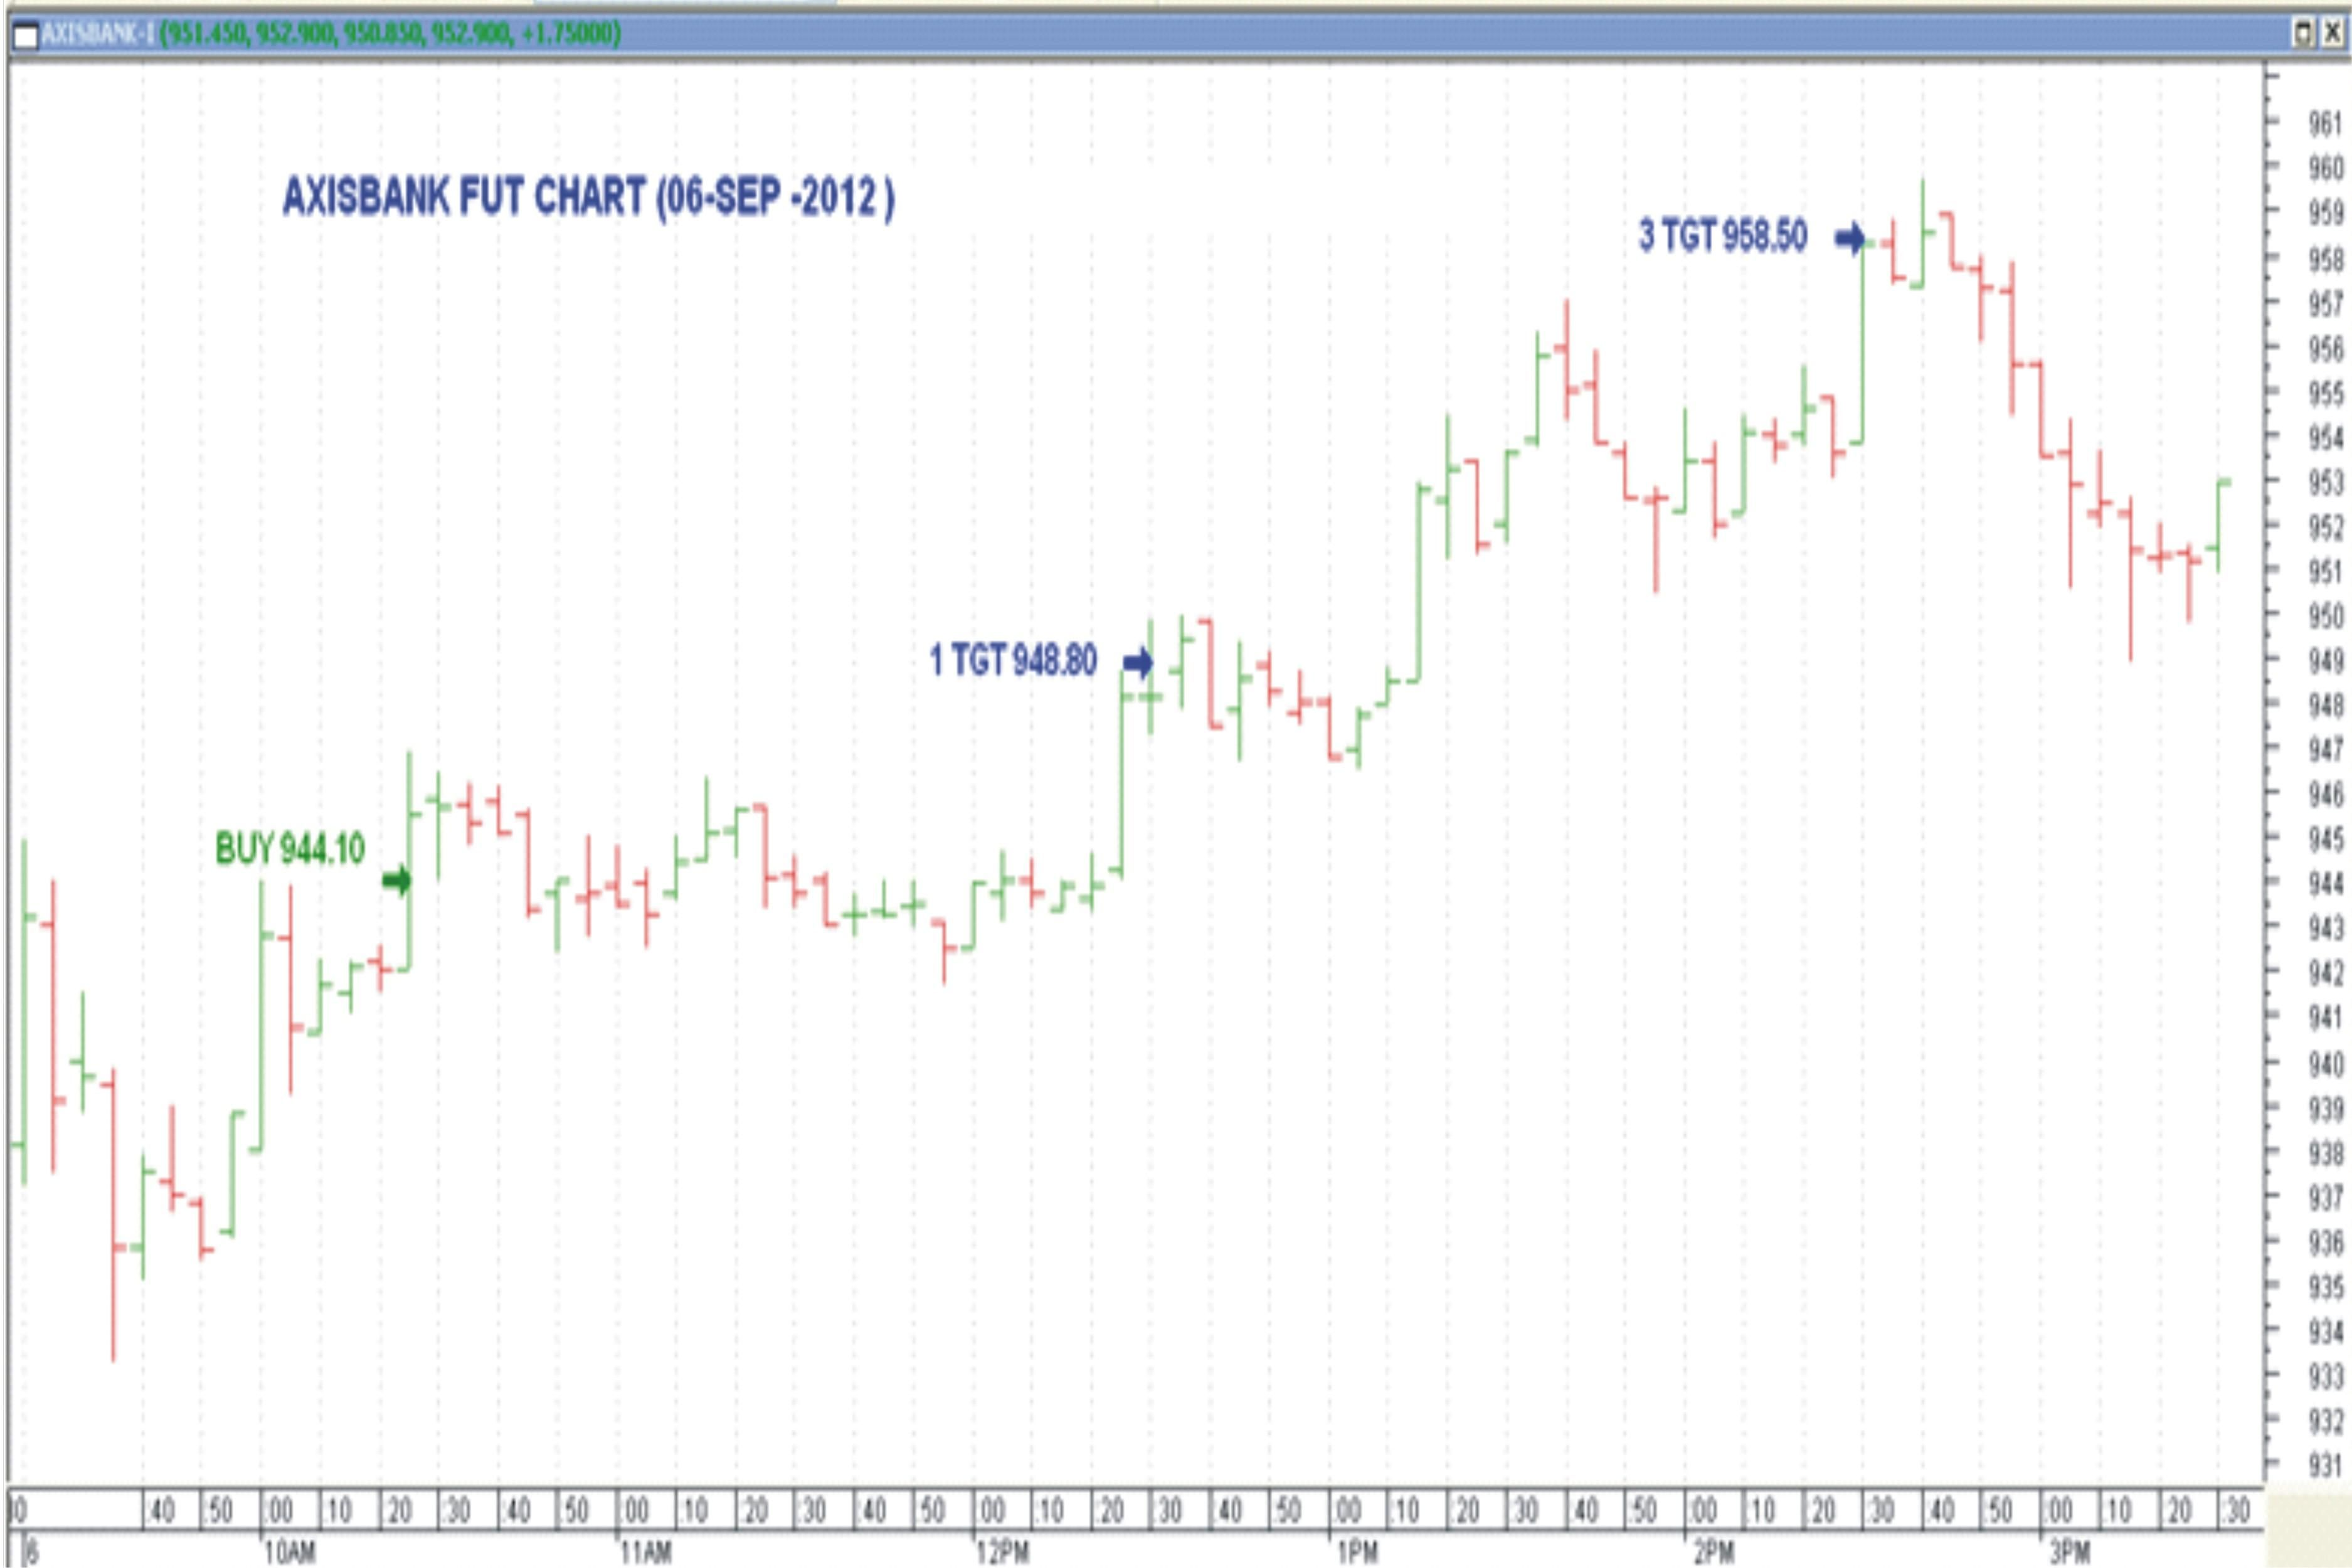 Banknifty Com Is A Concern Which Could Analyze Stock Market In All Ways Under Nse Nifty Futures Nse Stock F Relationship Management Stock Futures Stock Market